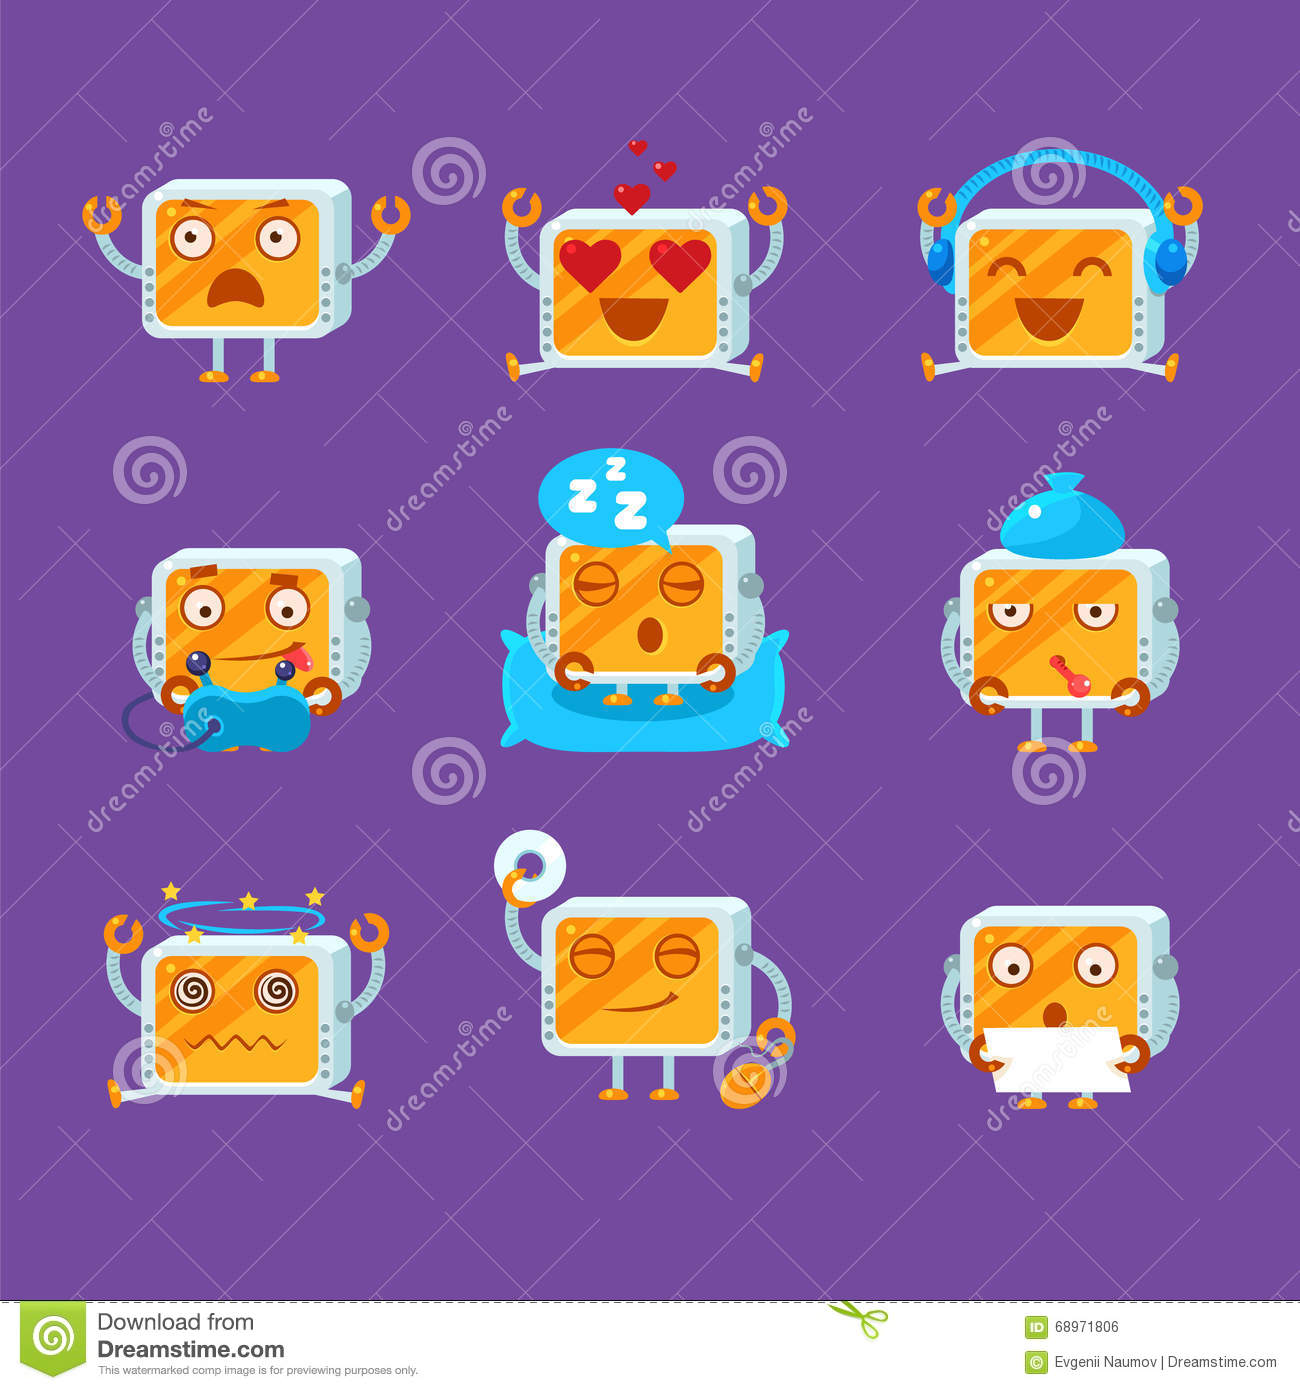 Small Robot Emoji Set Stock Vector Illustration Of Funny 68971806